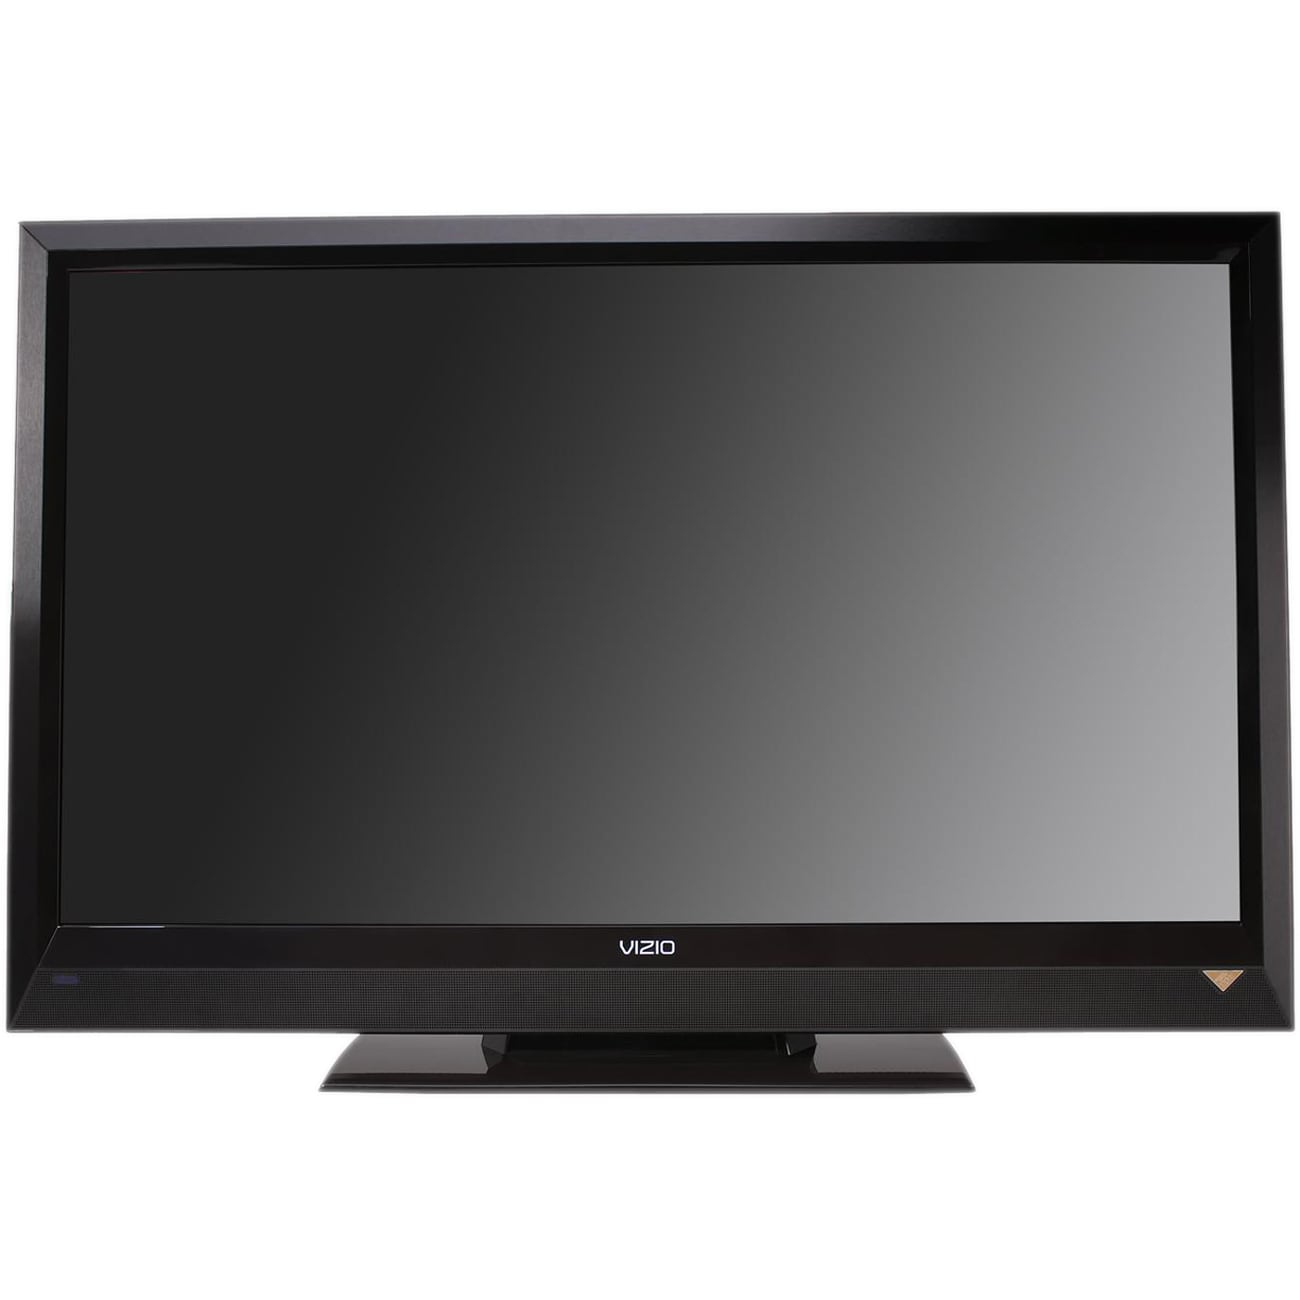 "Vizio E320VL Factory Refurbished 32"" 720p LCD TV - 16:9 - HDTV"